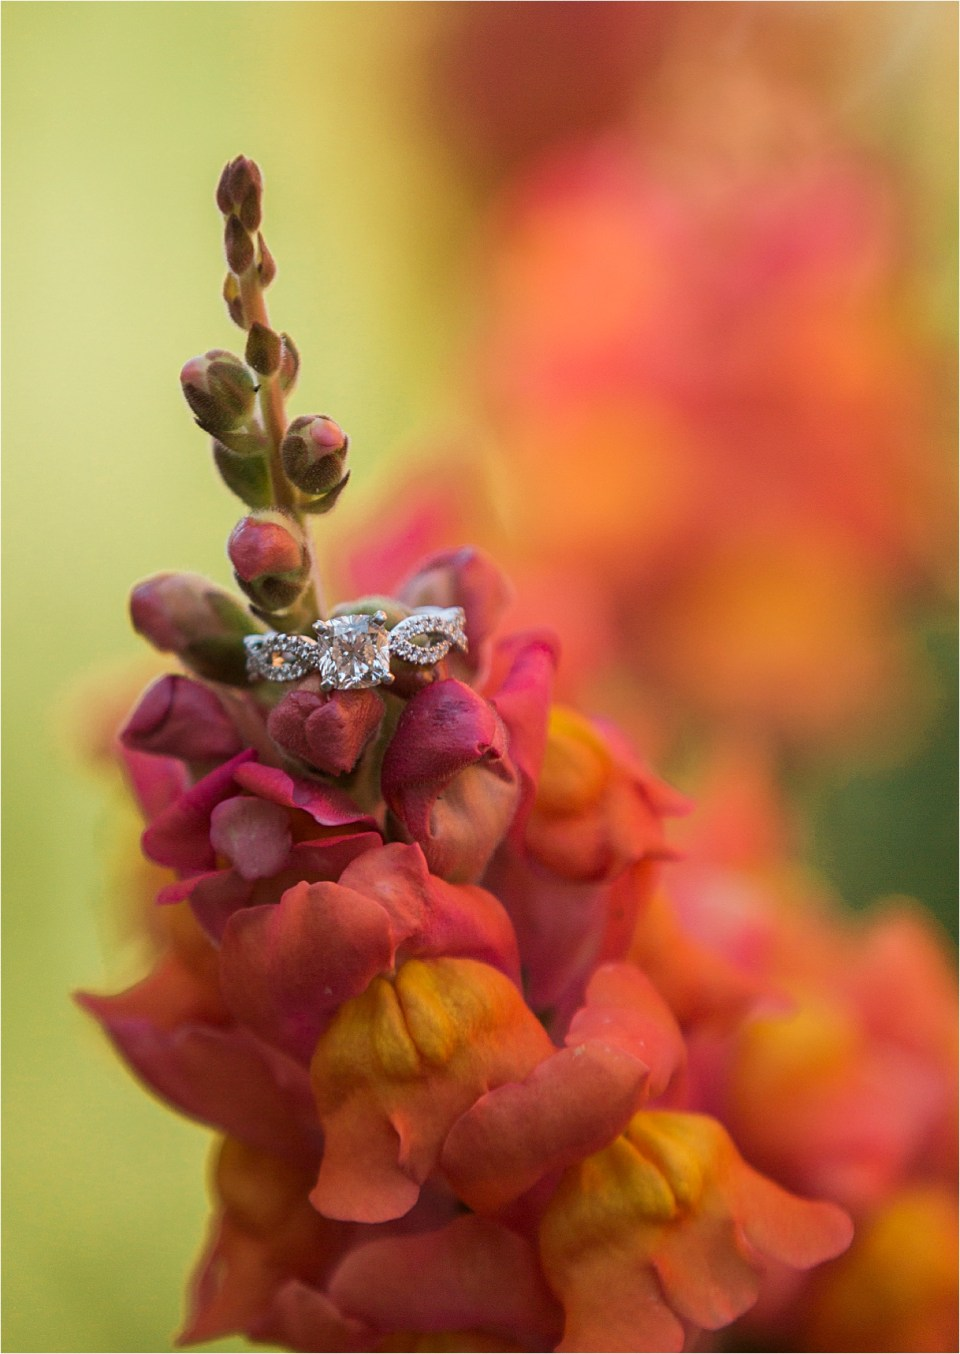 Diamond solitaire engagement ring on snap dragon flower.